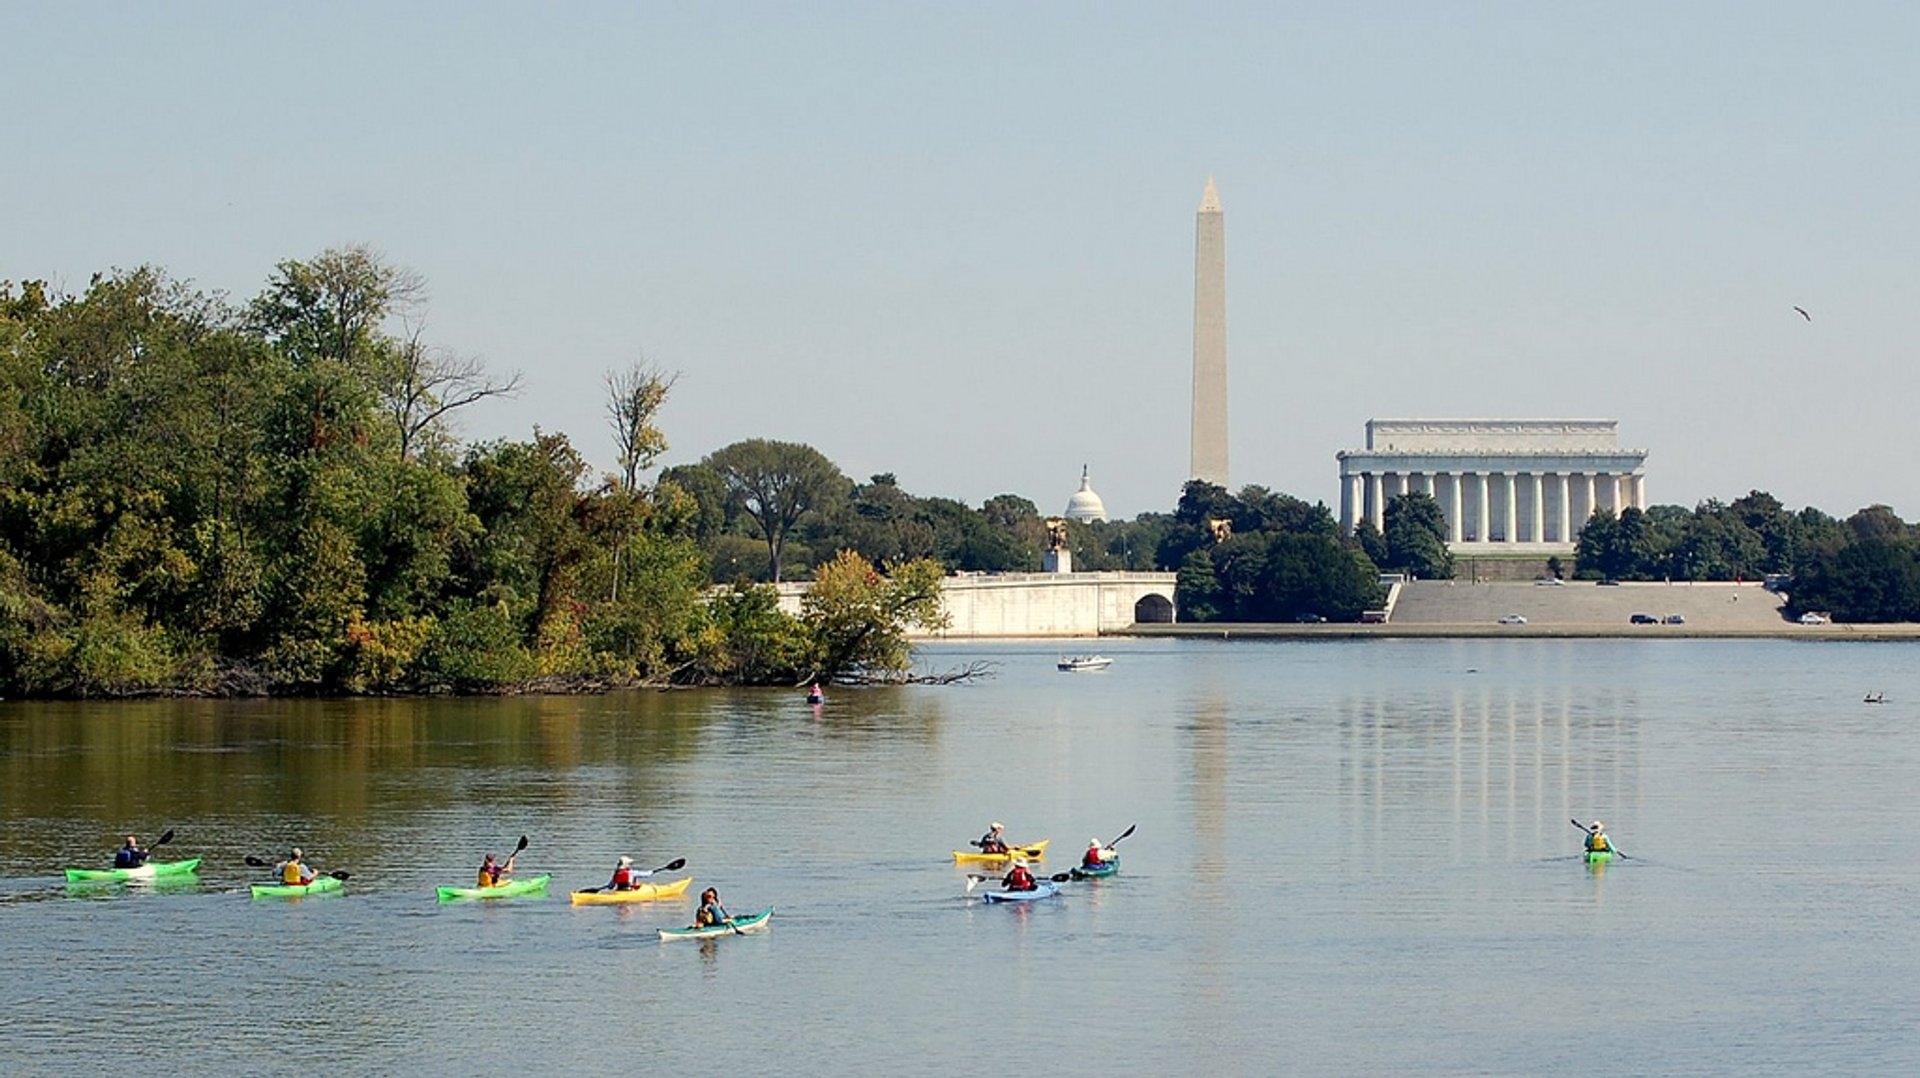 Kayakers enjoy a great view of the capital from the Potomac River on an early October day, 2008. 2020